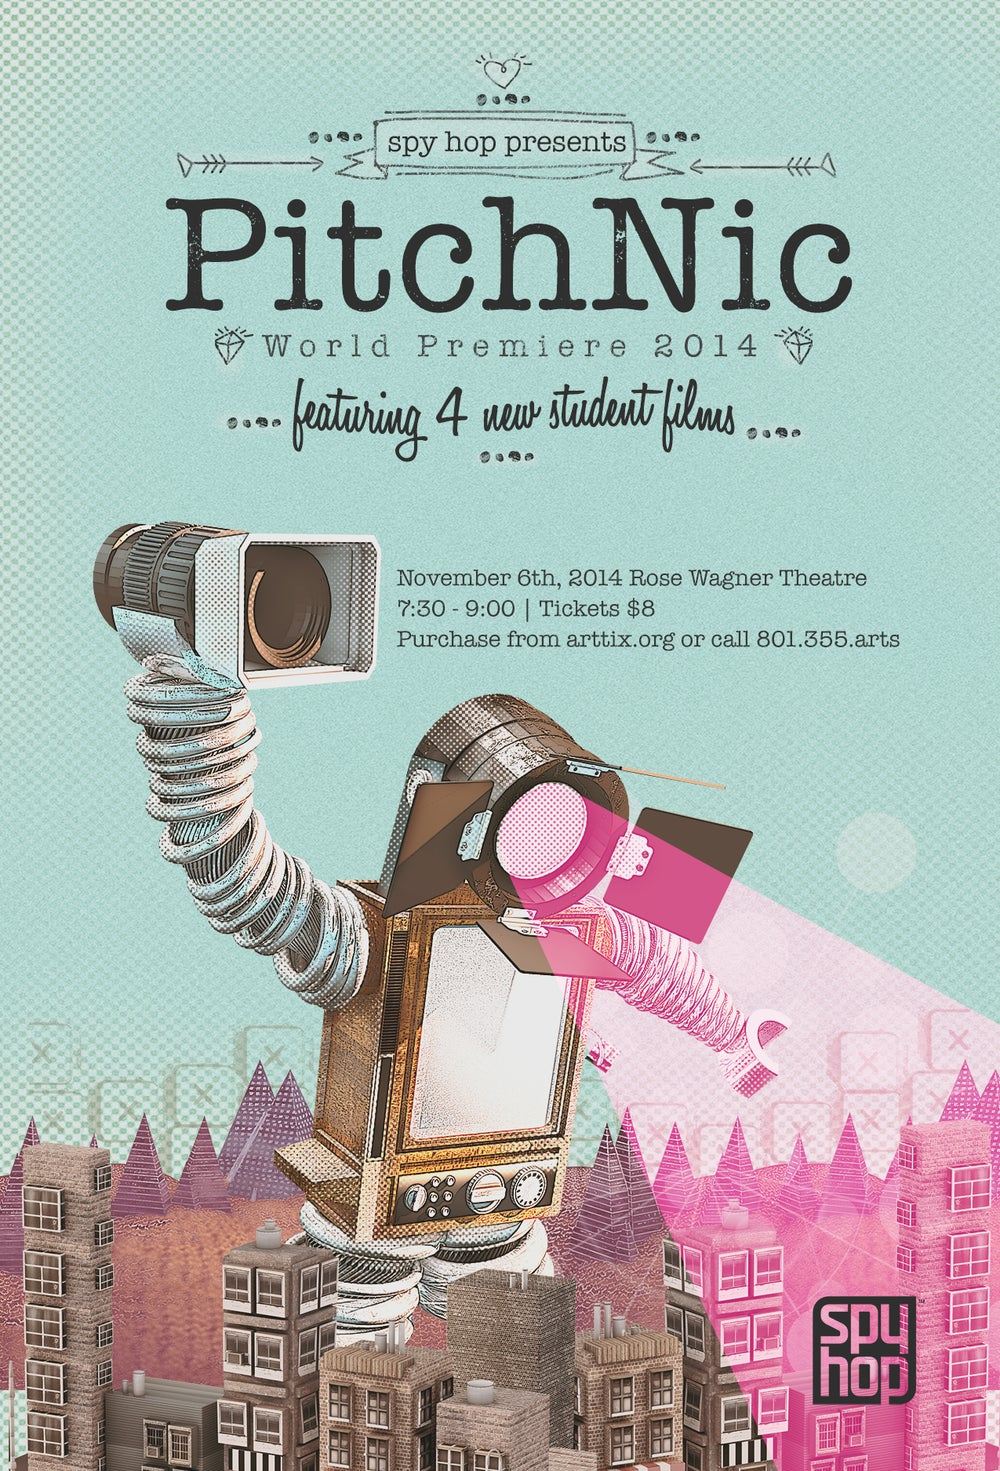 Image of 2014 PitchNic DVD